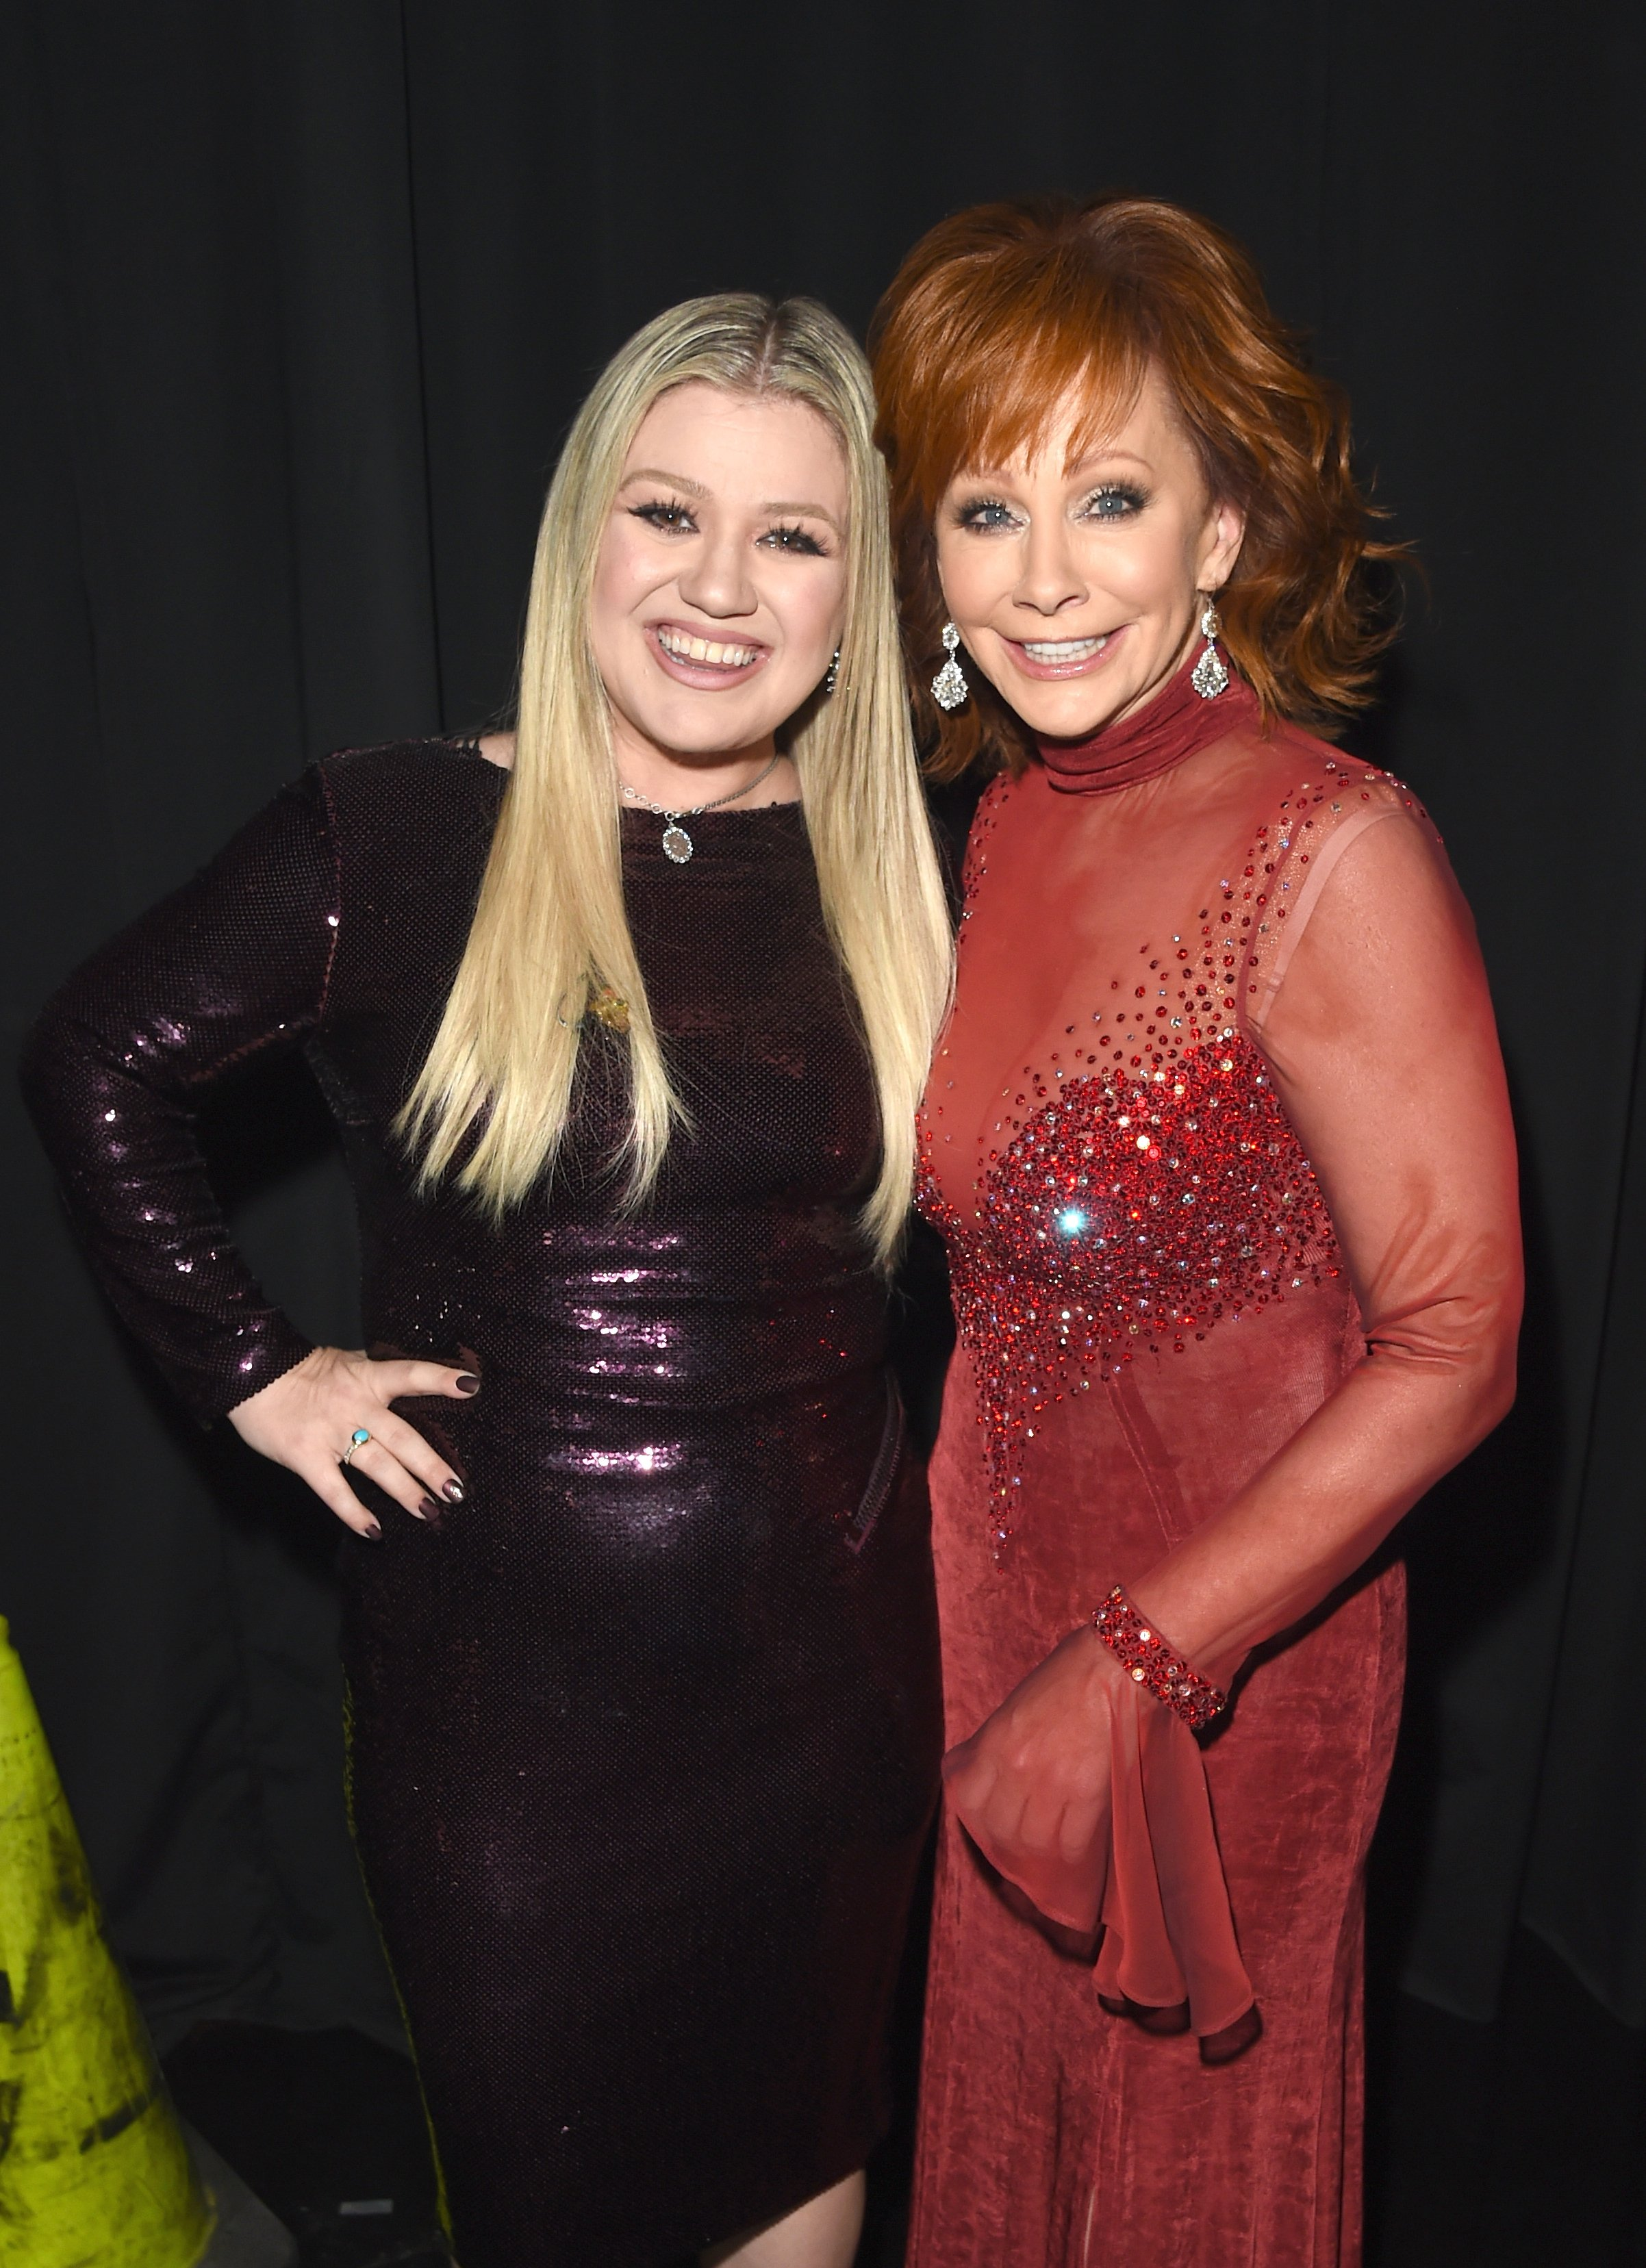 Kelly Clarkson and Reba McEntire on April 15, 2018 in Las Vegas, Nevada | Source: Getty Images